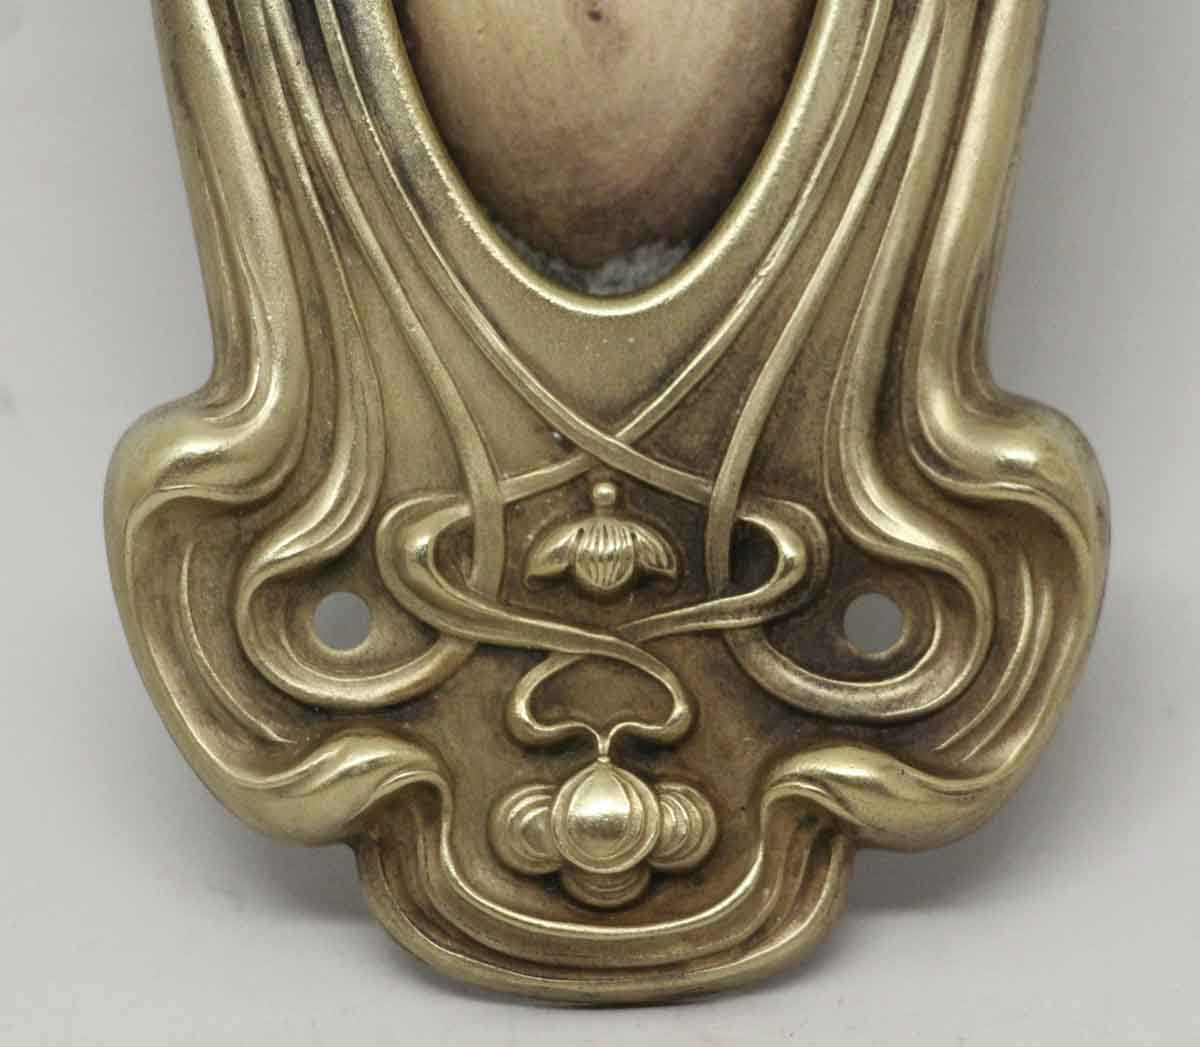 Art Nouveau Brass Pocket Door Pull with Keyhole - Art Nouveau Brass Pocket Door Pull With Keyhole Olde Good Things